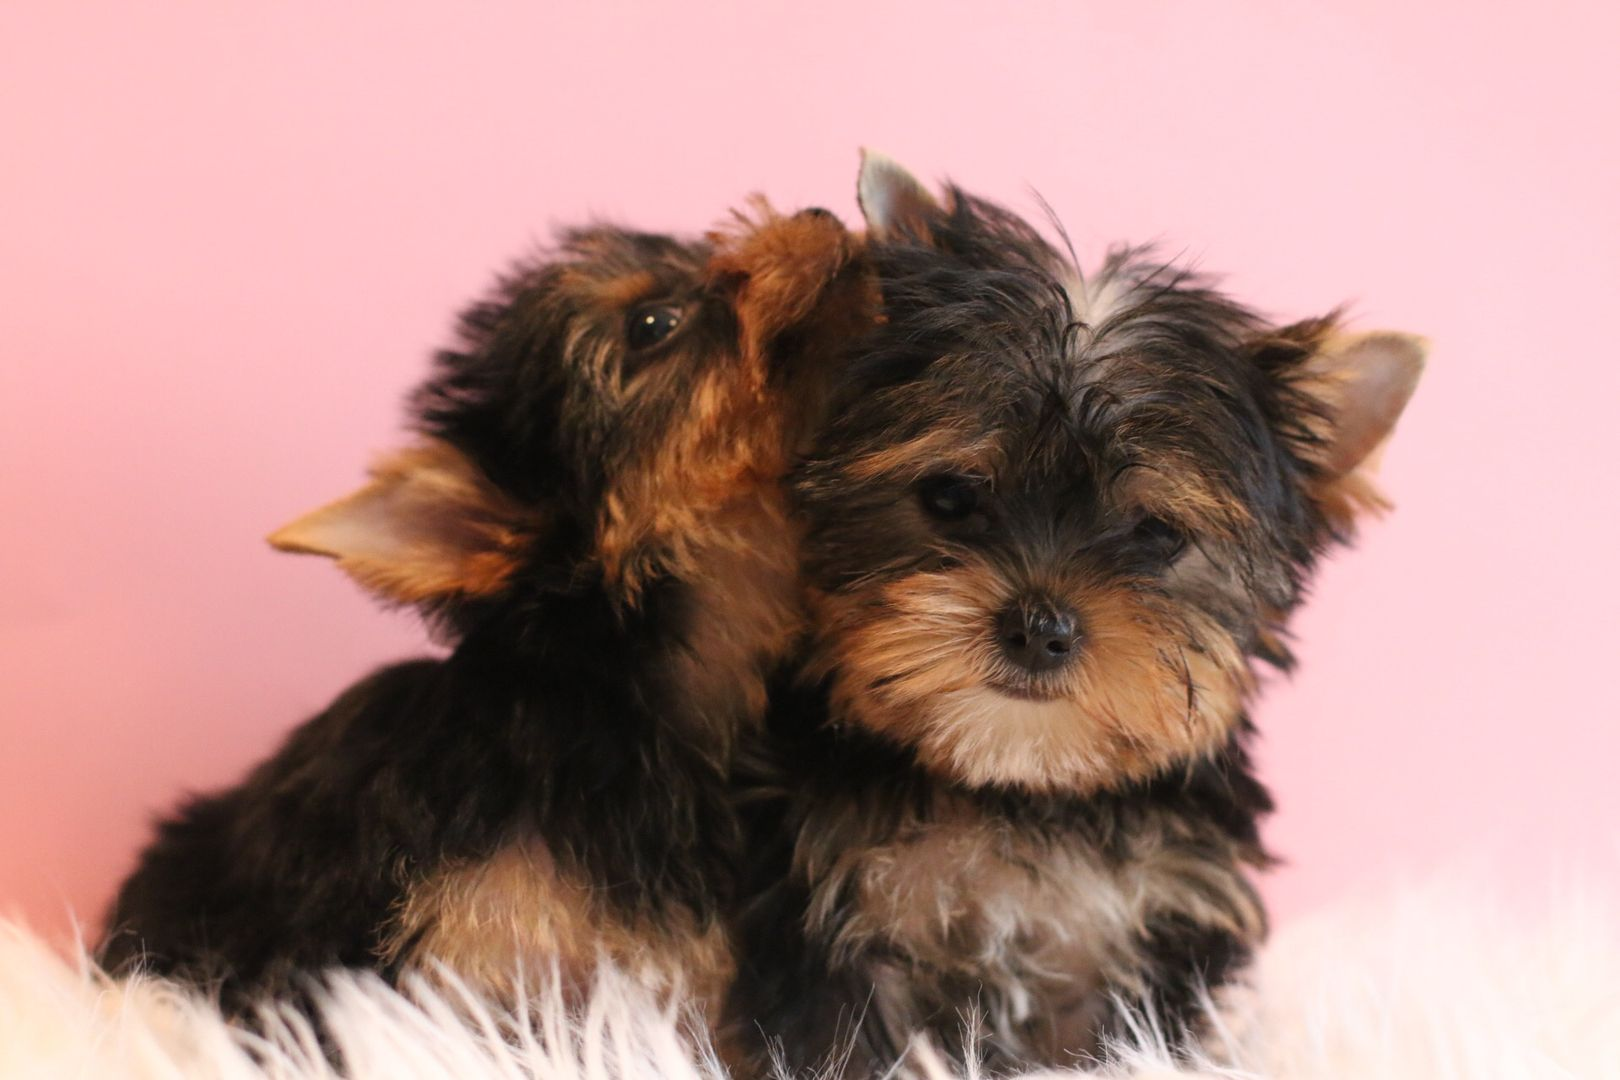 Learn More About Our Available Certified Yorkie Puppies In San Francisco Teacup Yorkie Puppies Teacup Chocolate Parti Yorkie Puppy Teacup Yorkie Puppy Yorkie